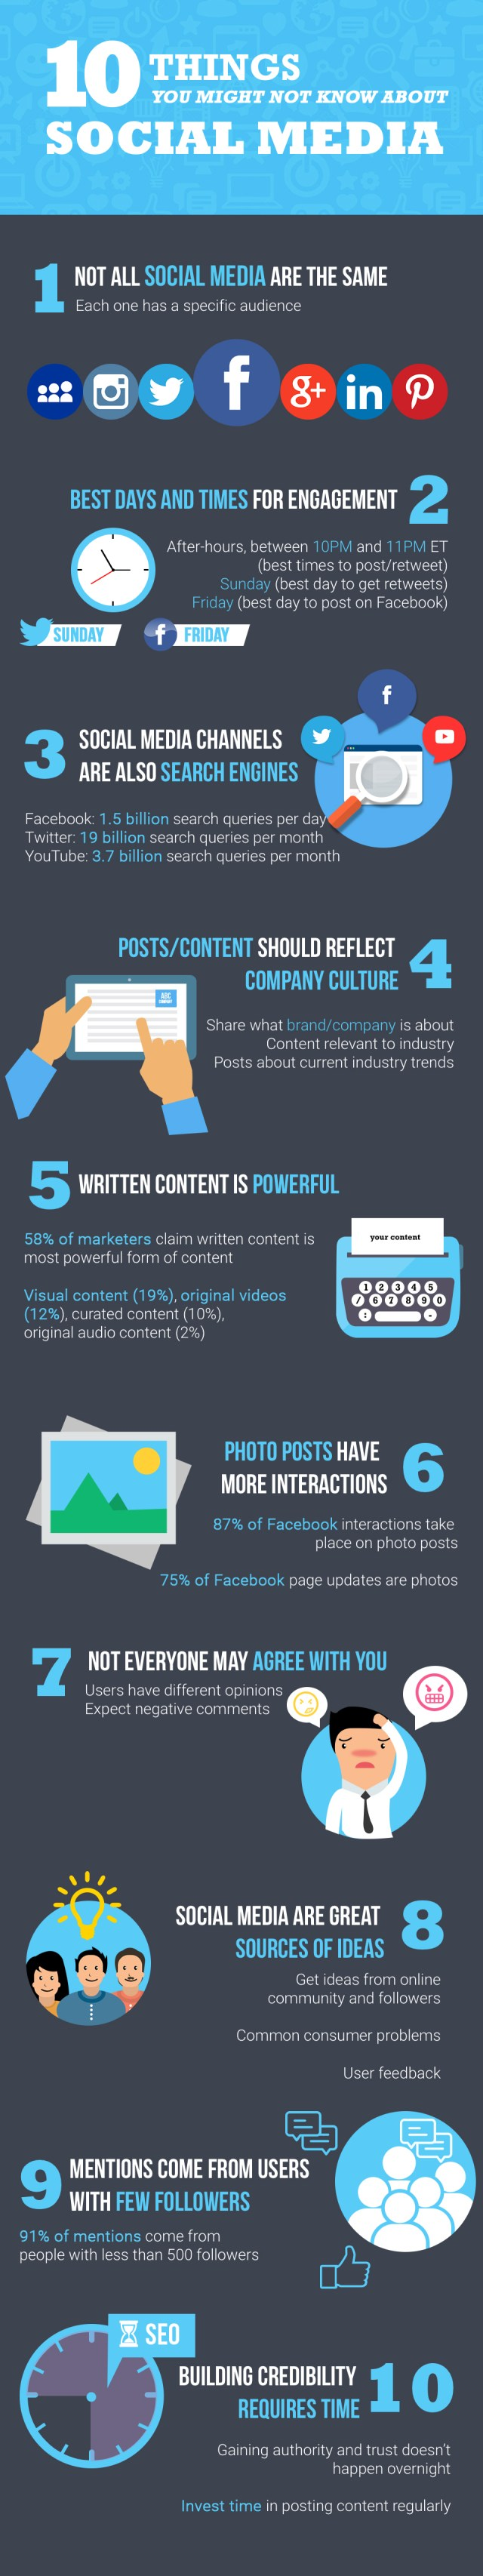 10-things-you-might-not-know-about-social-media_55ed2474cadfa